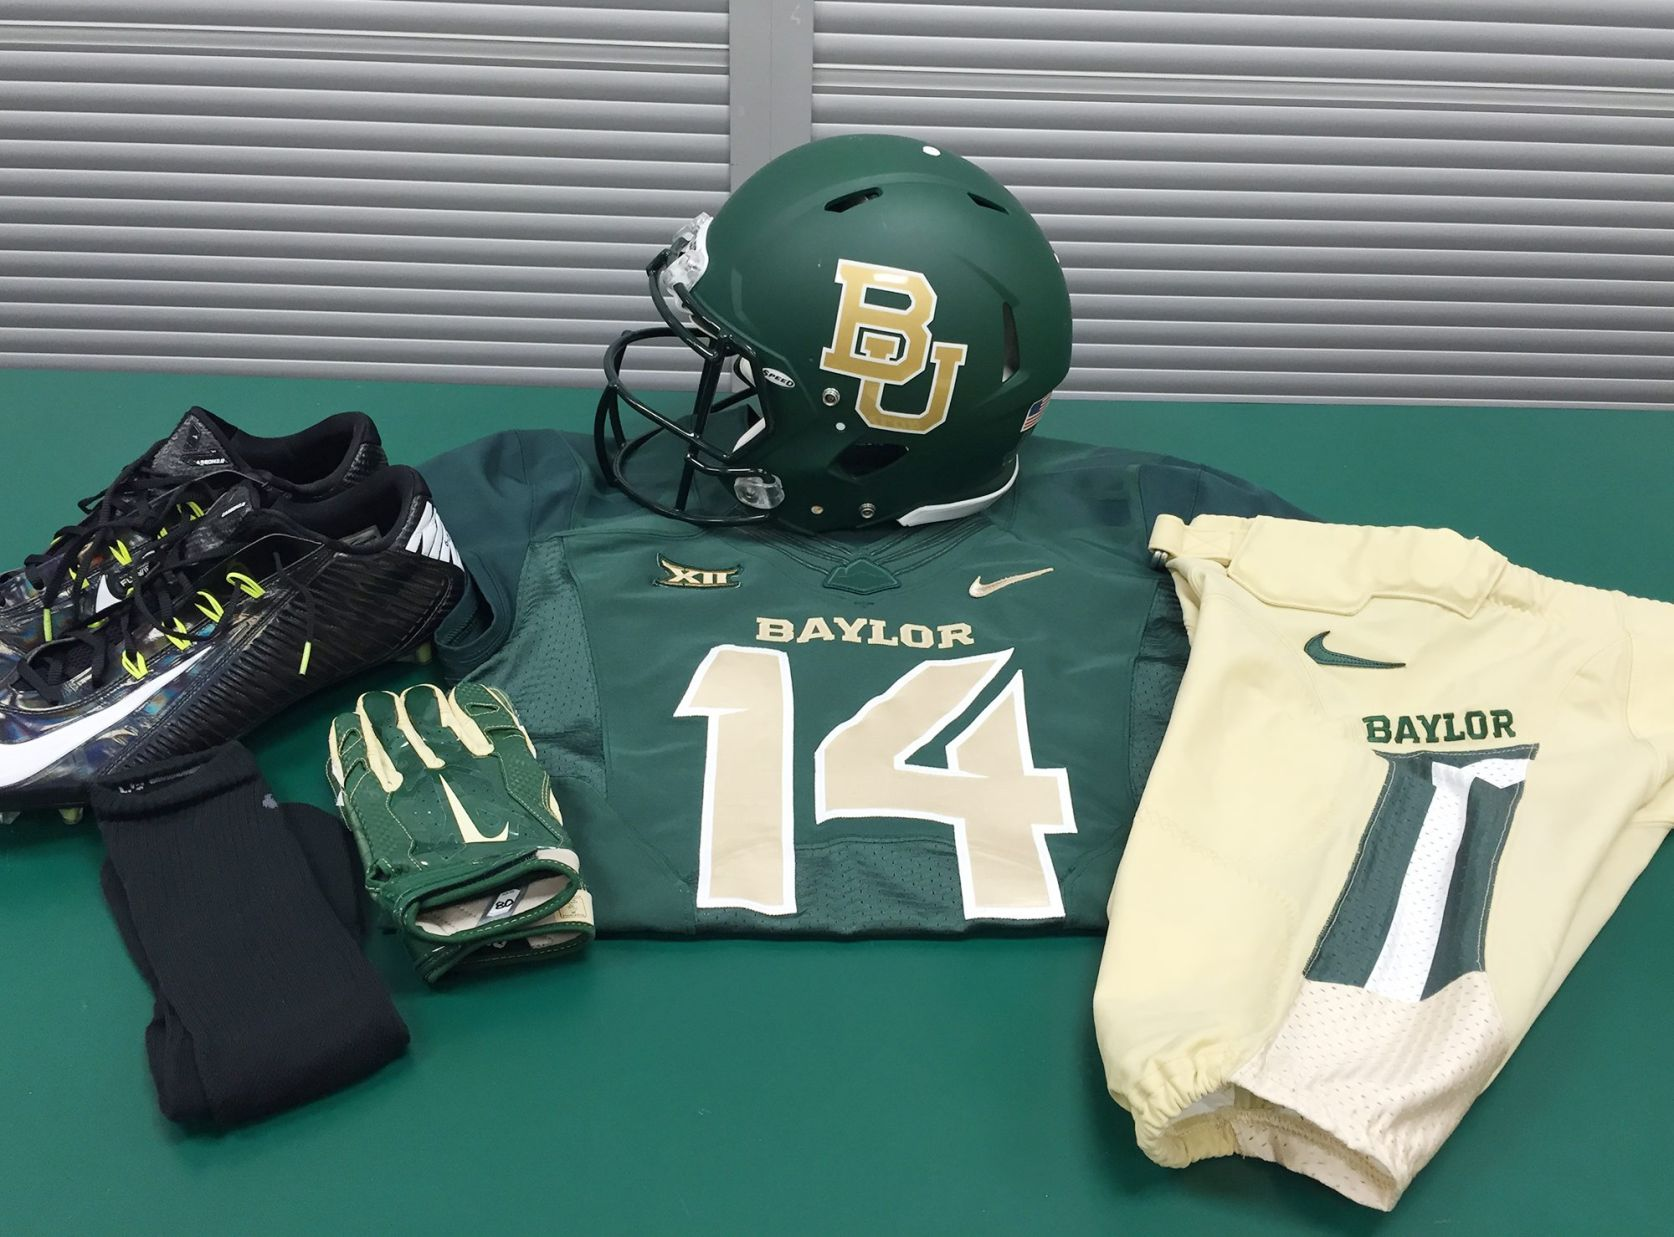 Baylor s endless variety of uniforms has given football program an ... 96dff09e5